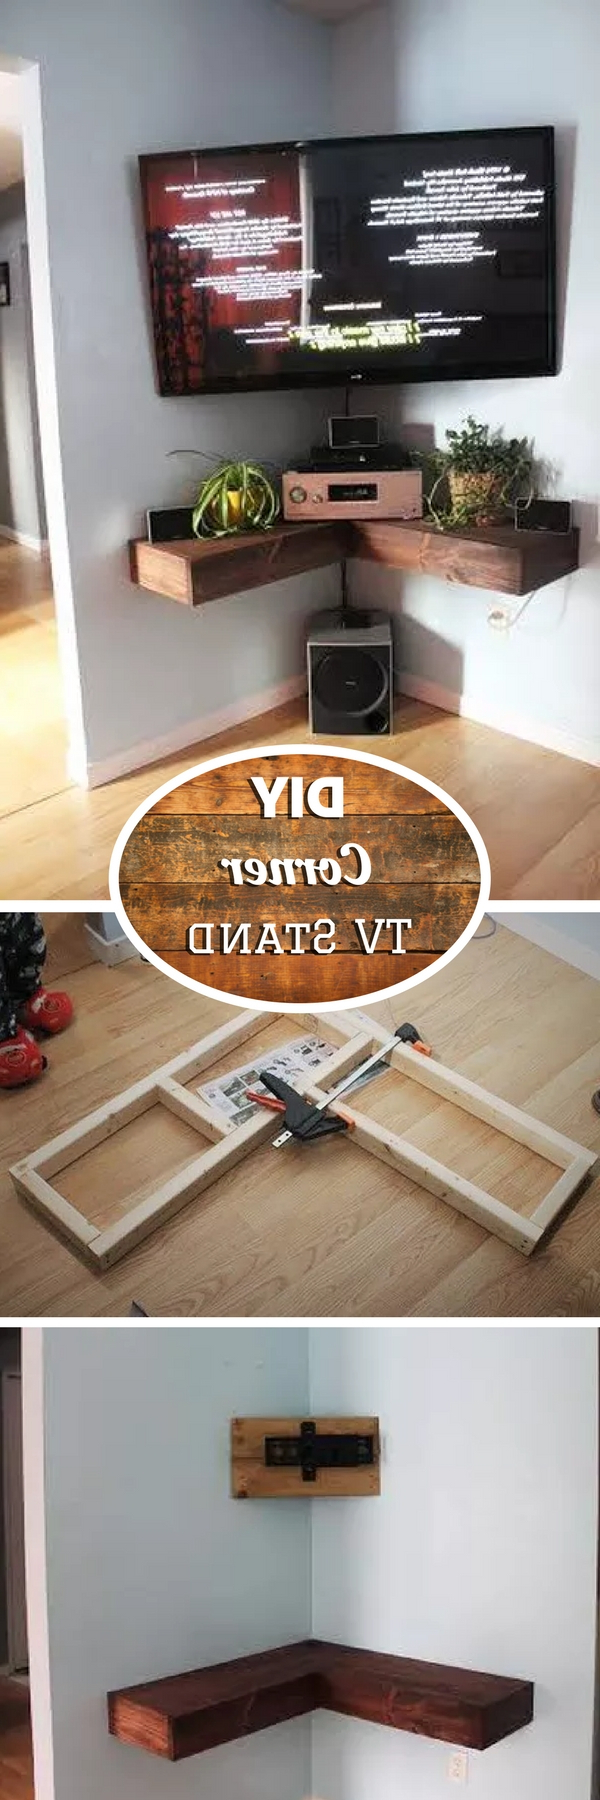 21+ Diy Tv Stand Ideas For Your Weekend Home Project Intended For Fashionable Triangular Tv Stands (View 15 of 20)